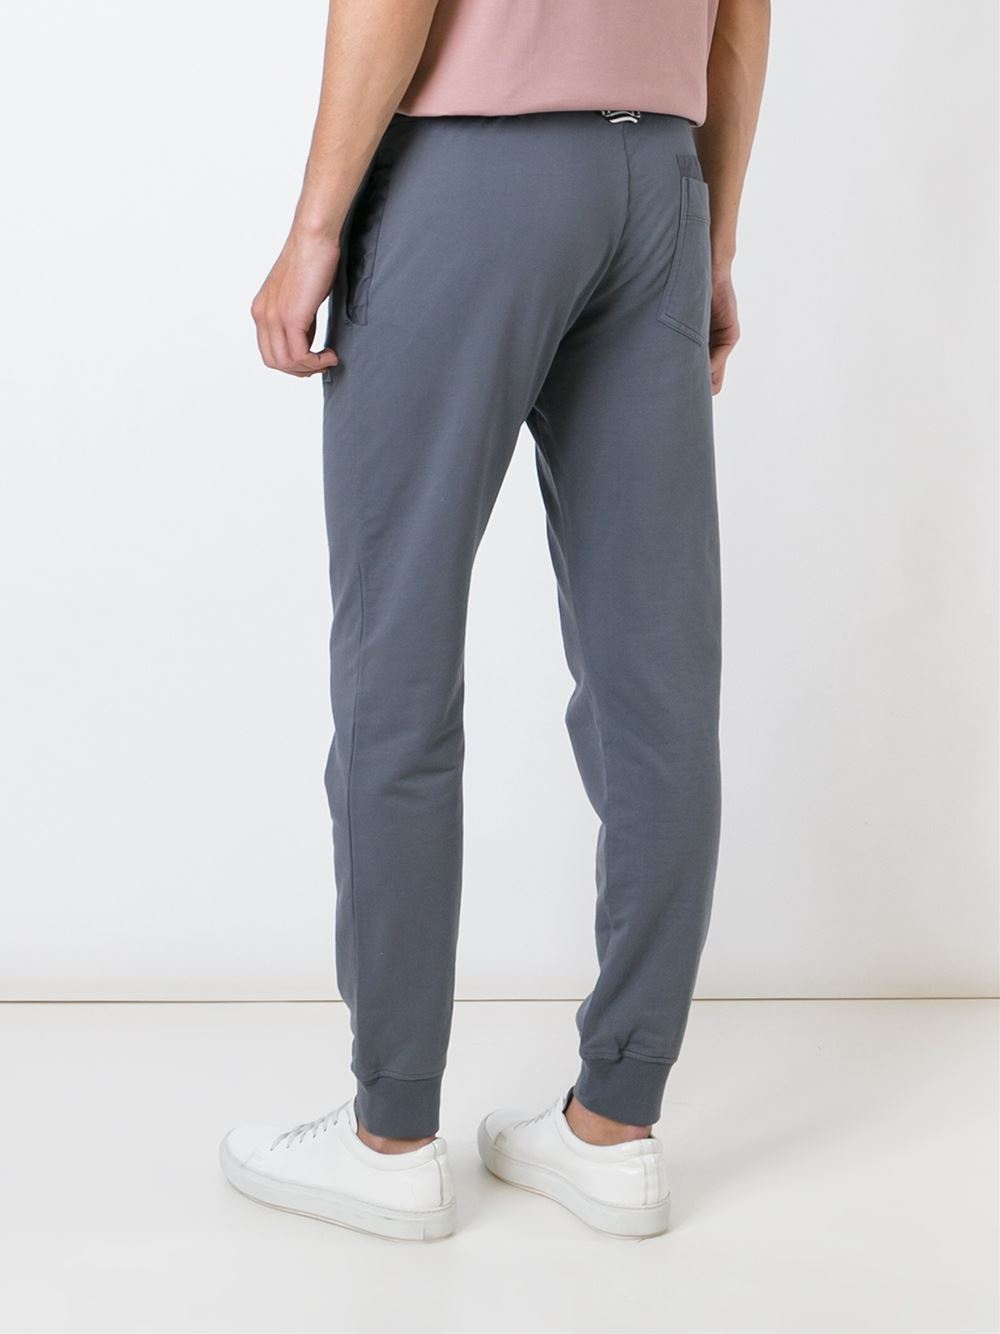 Stone Island - Gray Track Pants for Men - Lyst